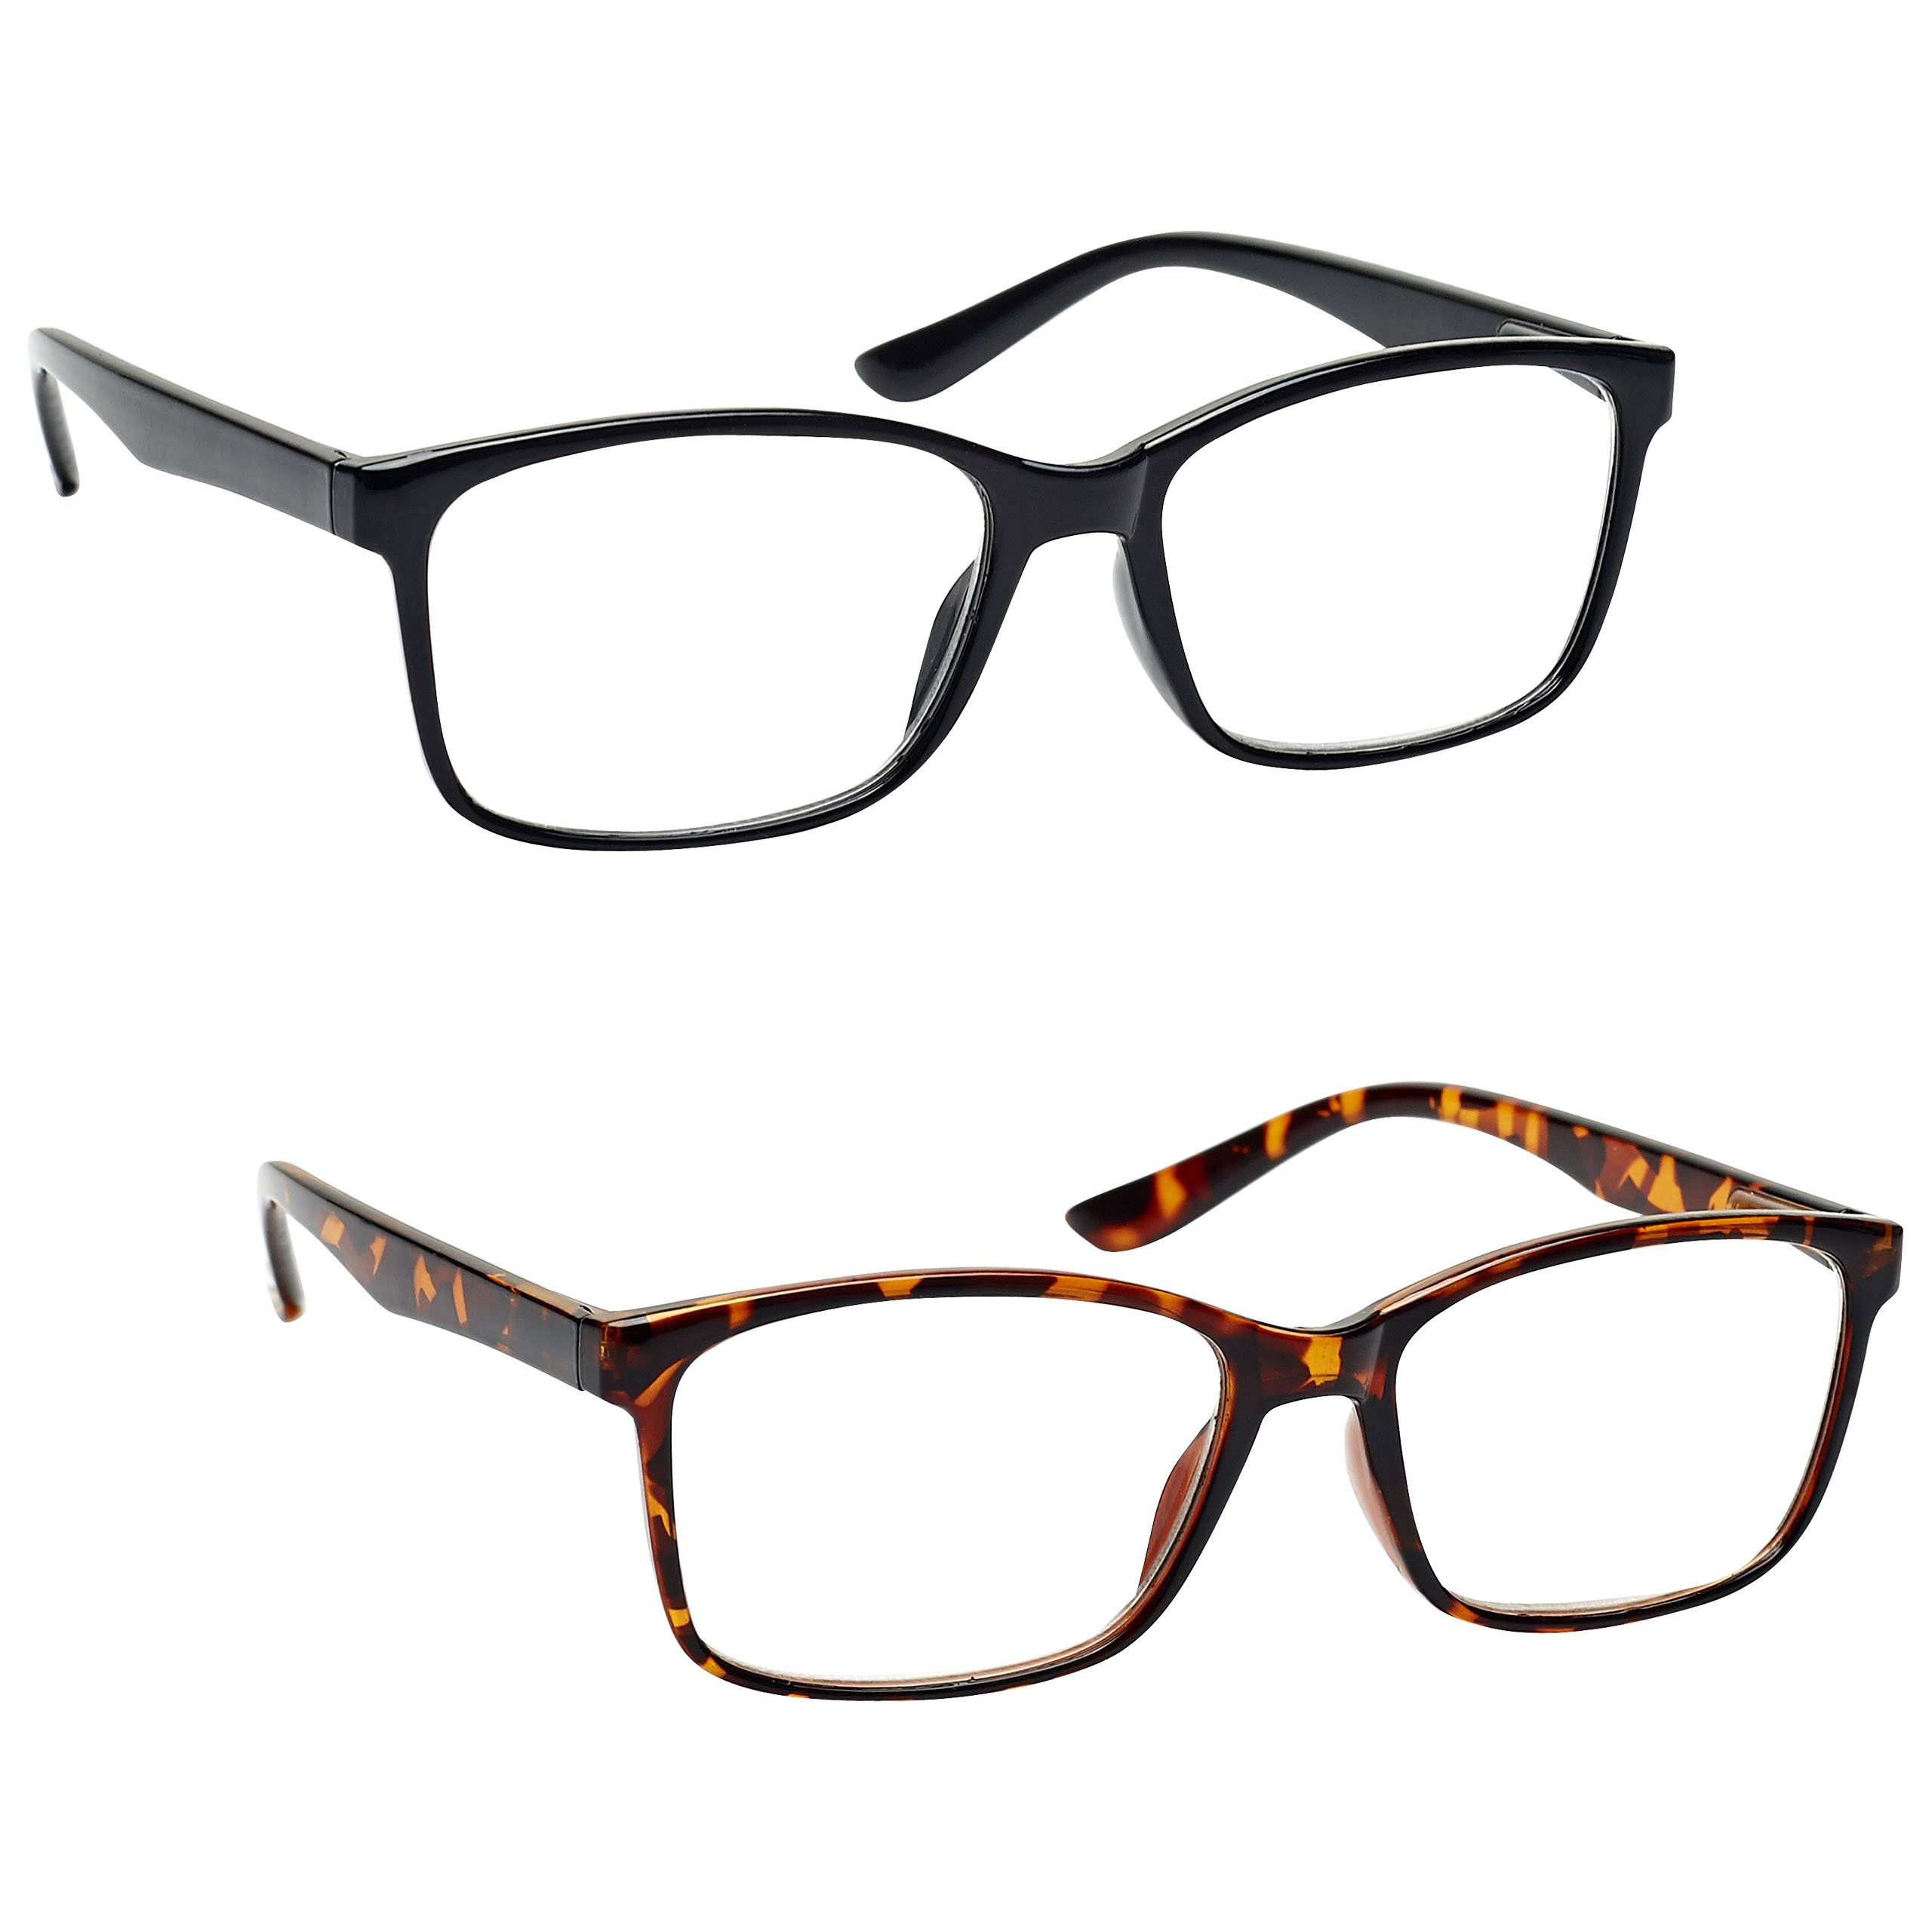 The Reading Glasses Company Black & Brown Tortoiseshell Readers Value 2 Pack Large Mens RR83-12 +1.50 by The Reading Glasses Company